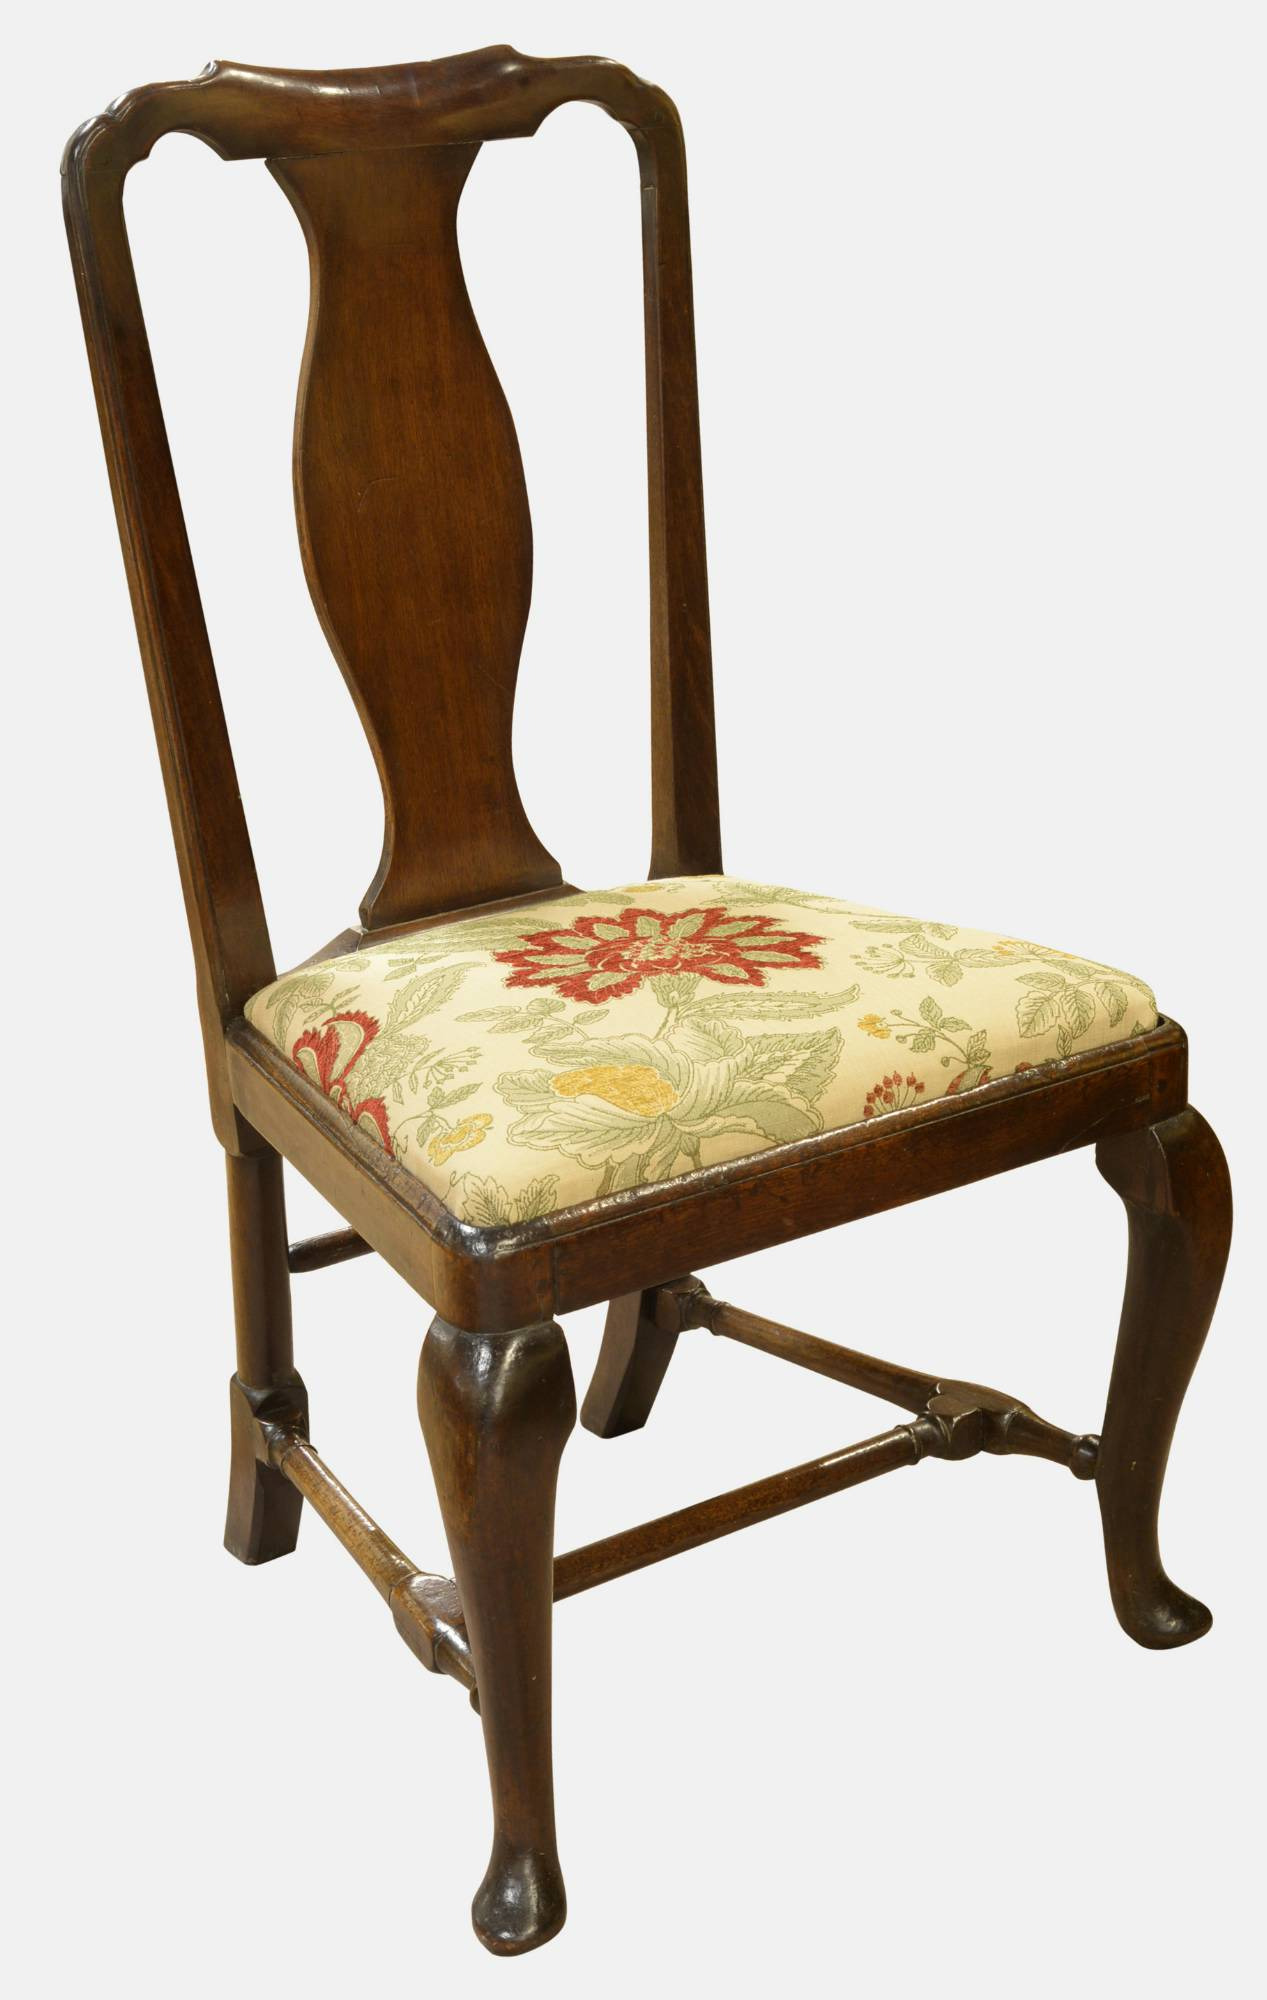 queen anne period walnut side chair c1710